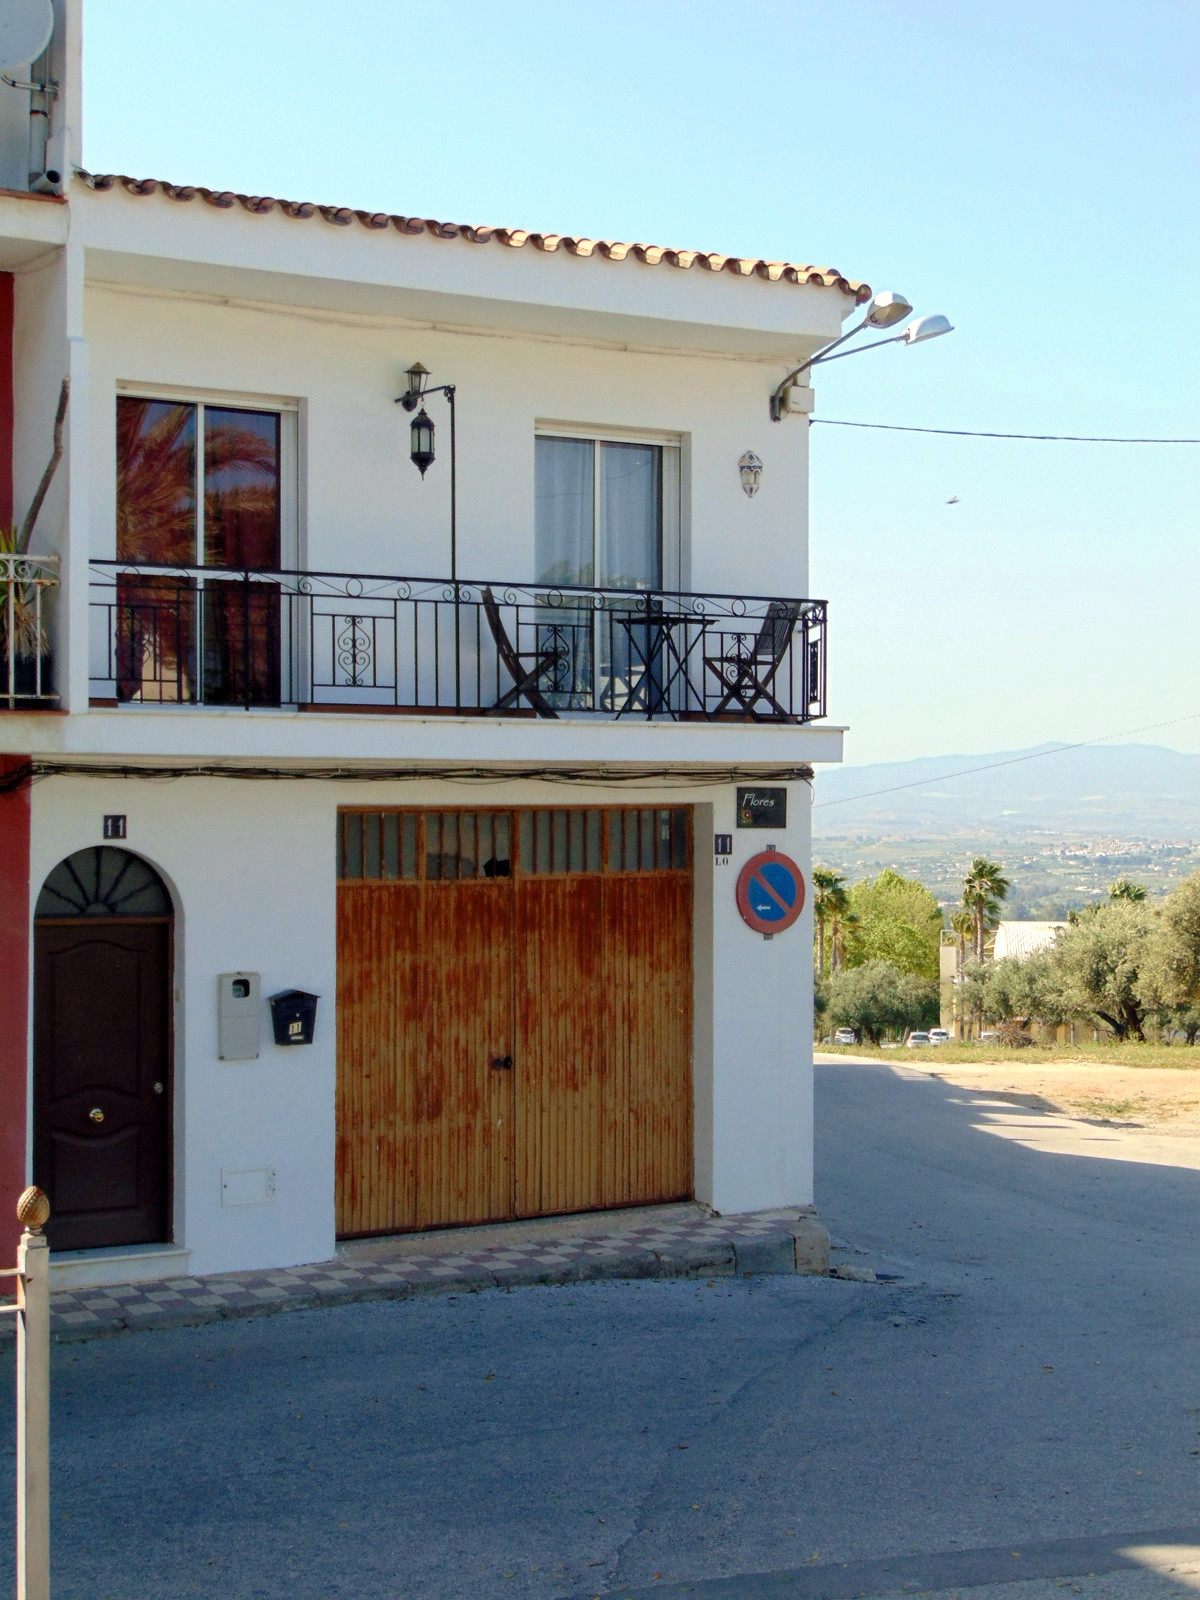 Spacious 4 bedroom purpose built Apartment. On the edge of Town Easy walking distance to shops Bars ,Spain